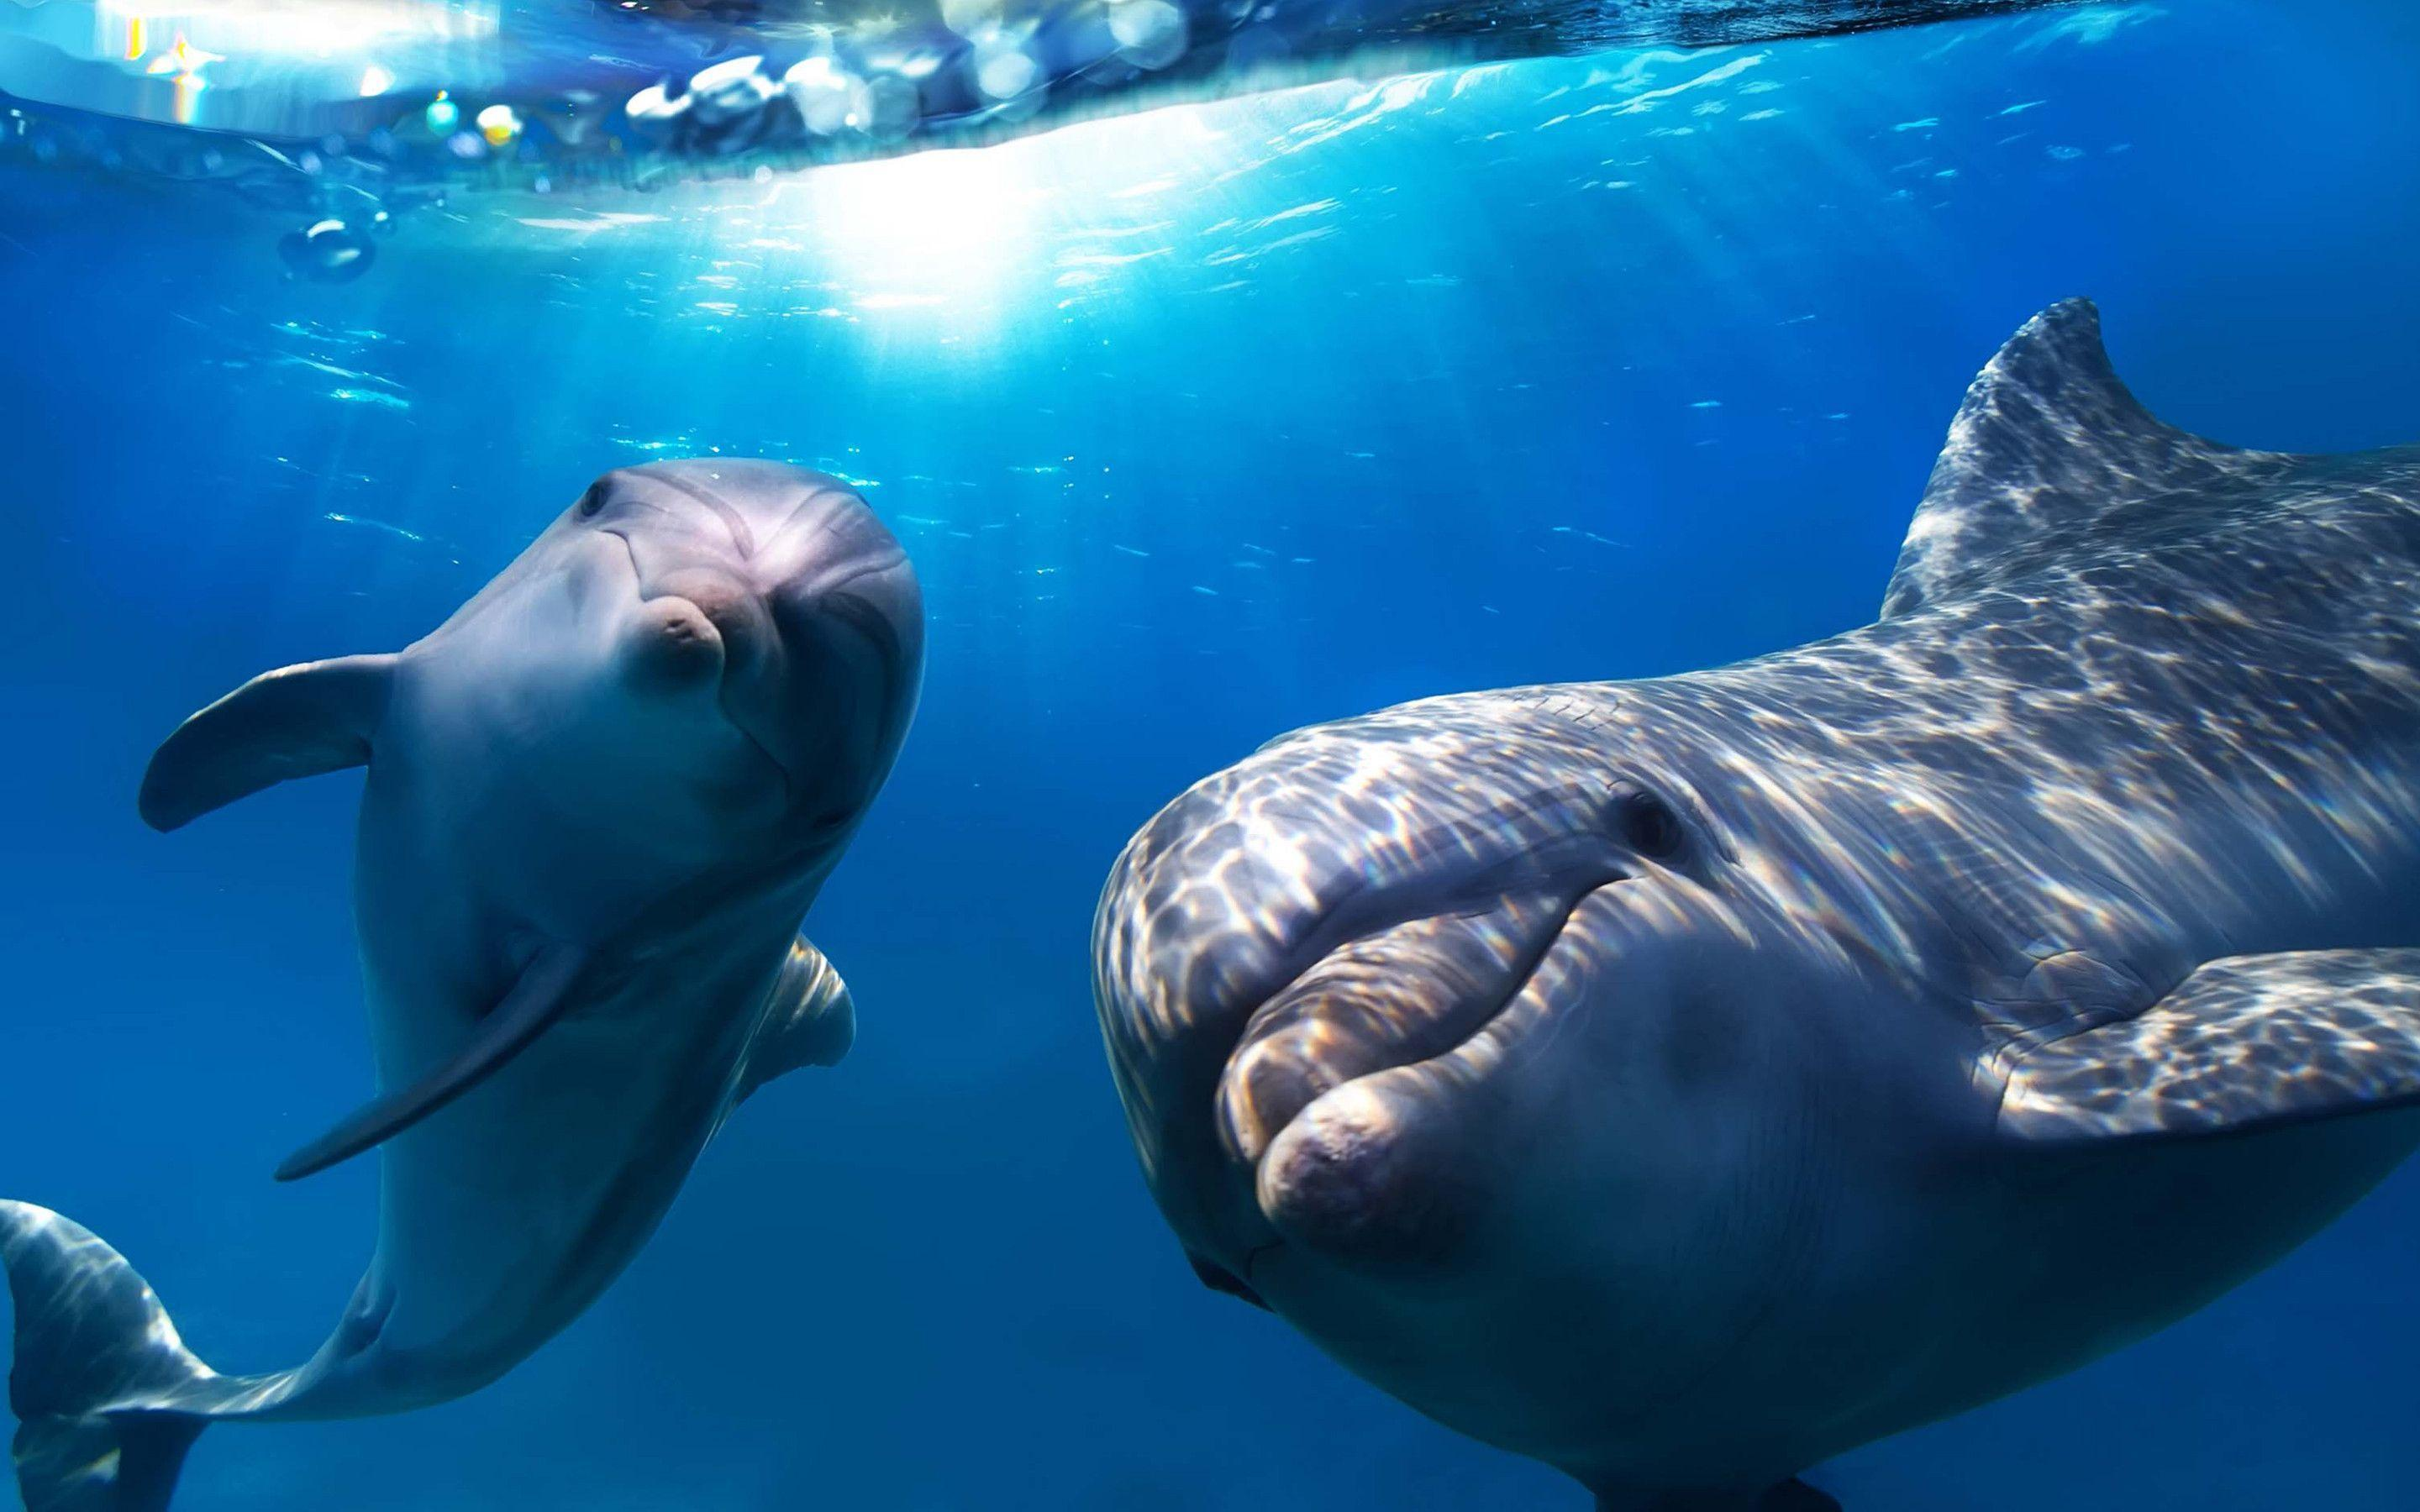 Dolphin Wallpapers - Full HD wallpaper search